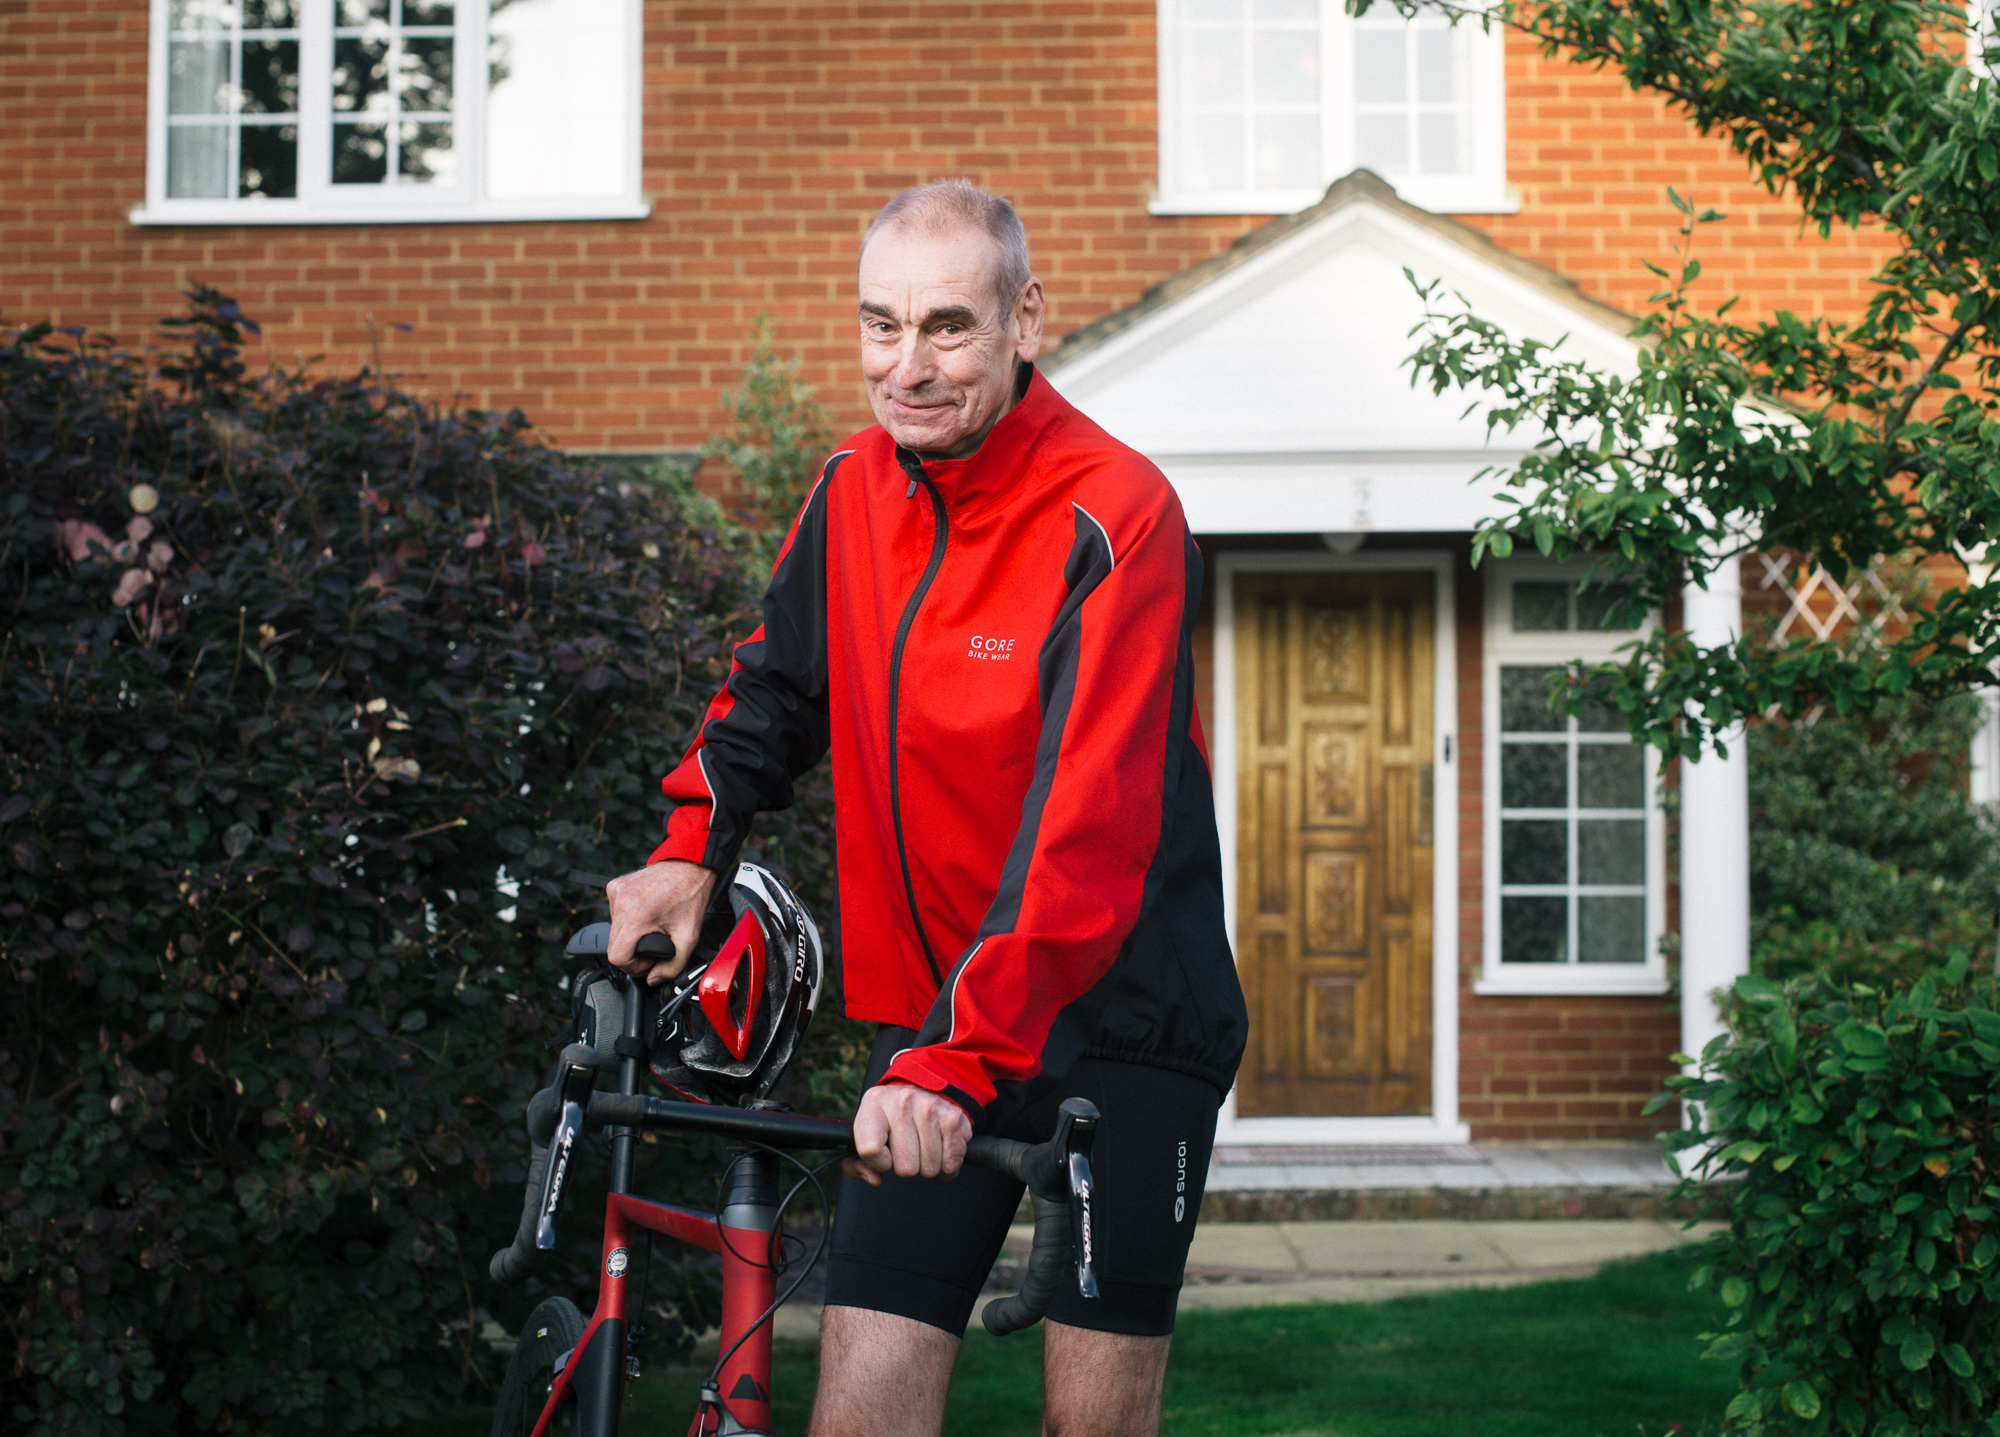 Chris Walker, photographed for the Times Money section at his home in Cranfield, UK. [ more… ]